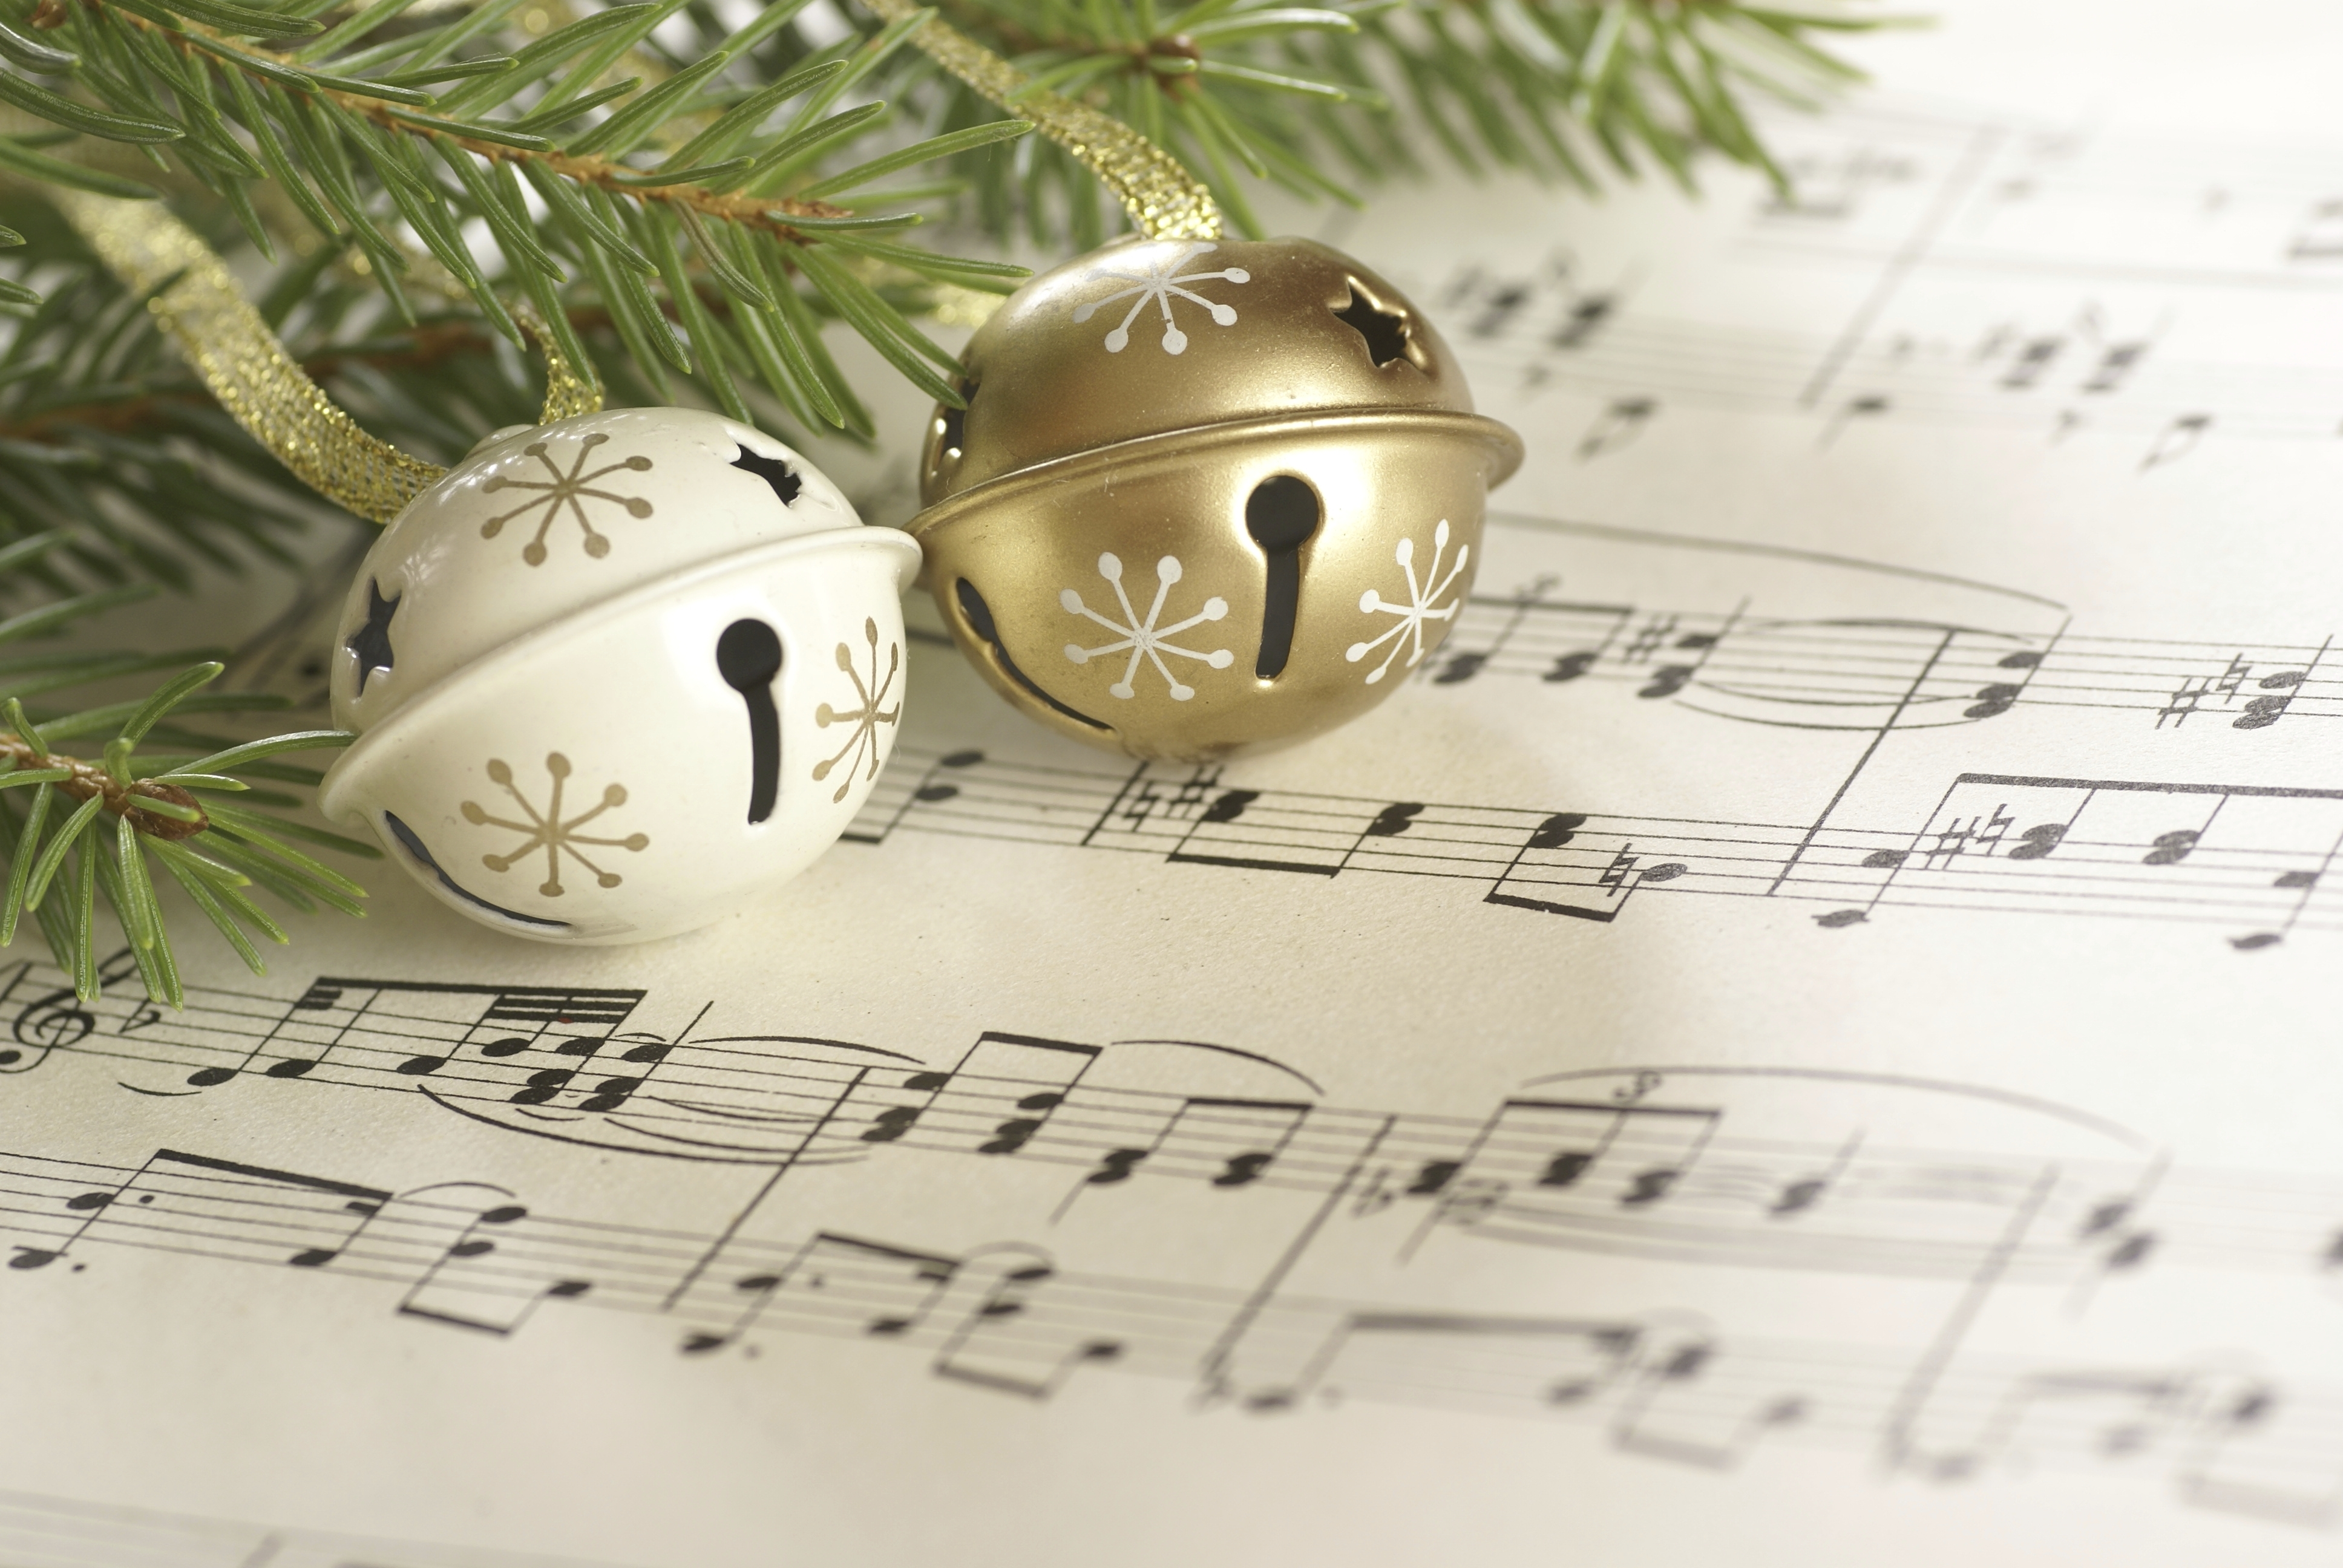 Christmas Music Images.It S Okay To Listen To Christmas Music Before Thanksgiving